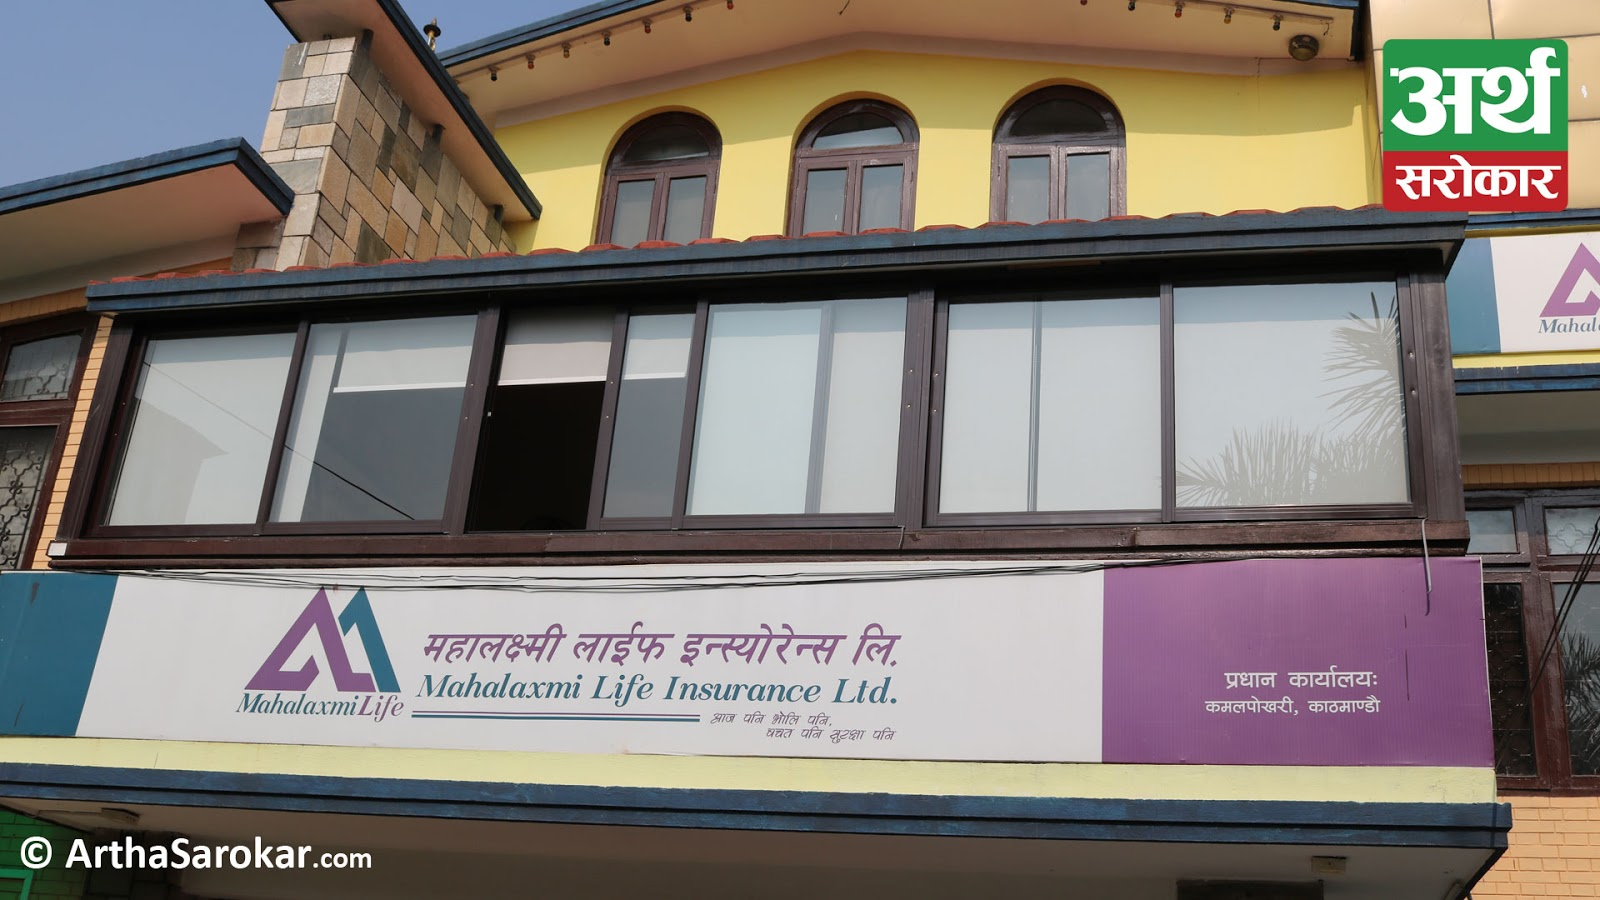 IPO of Mahalakshmi Life Insurance coming up, annual general meeting to be held on February 15 to pass the resolution